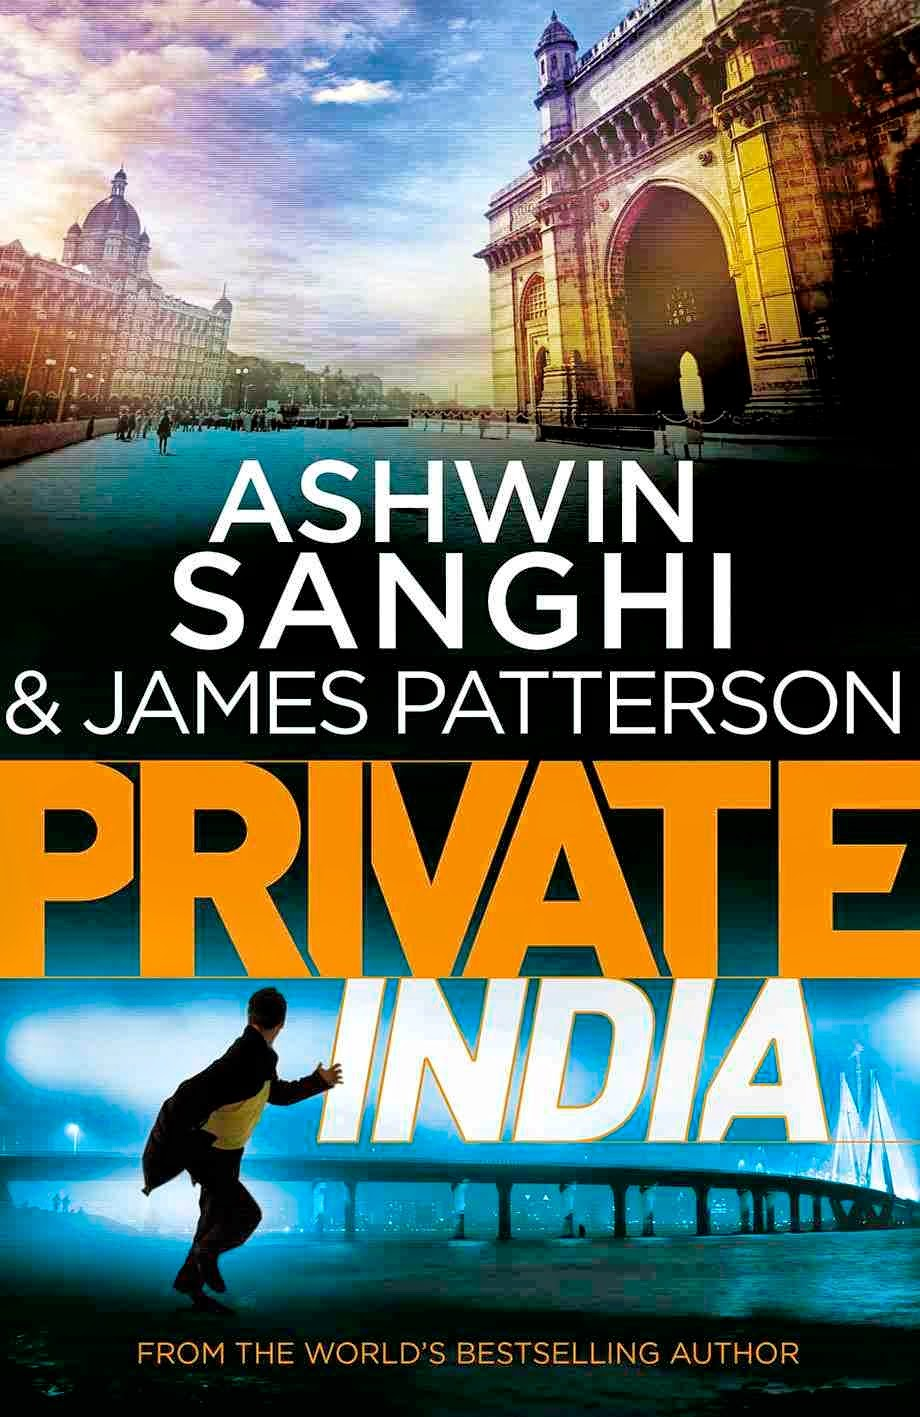 private india book, ashwin sanghi, james patterson